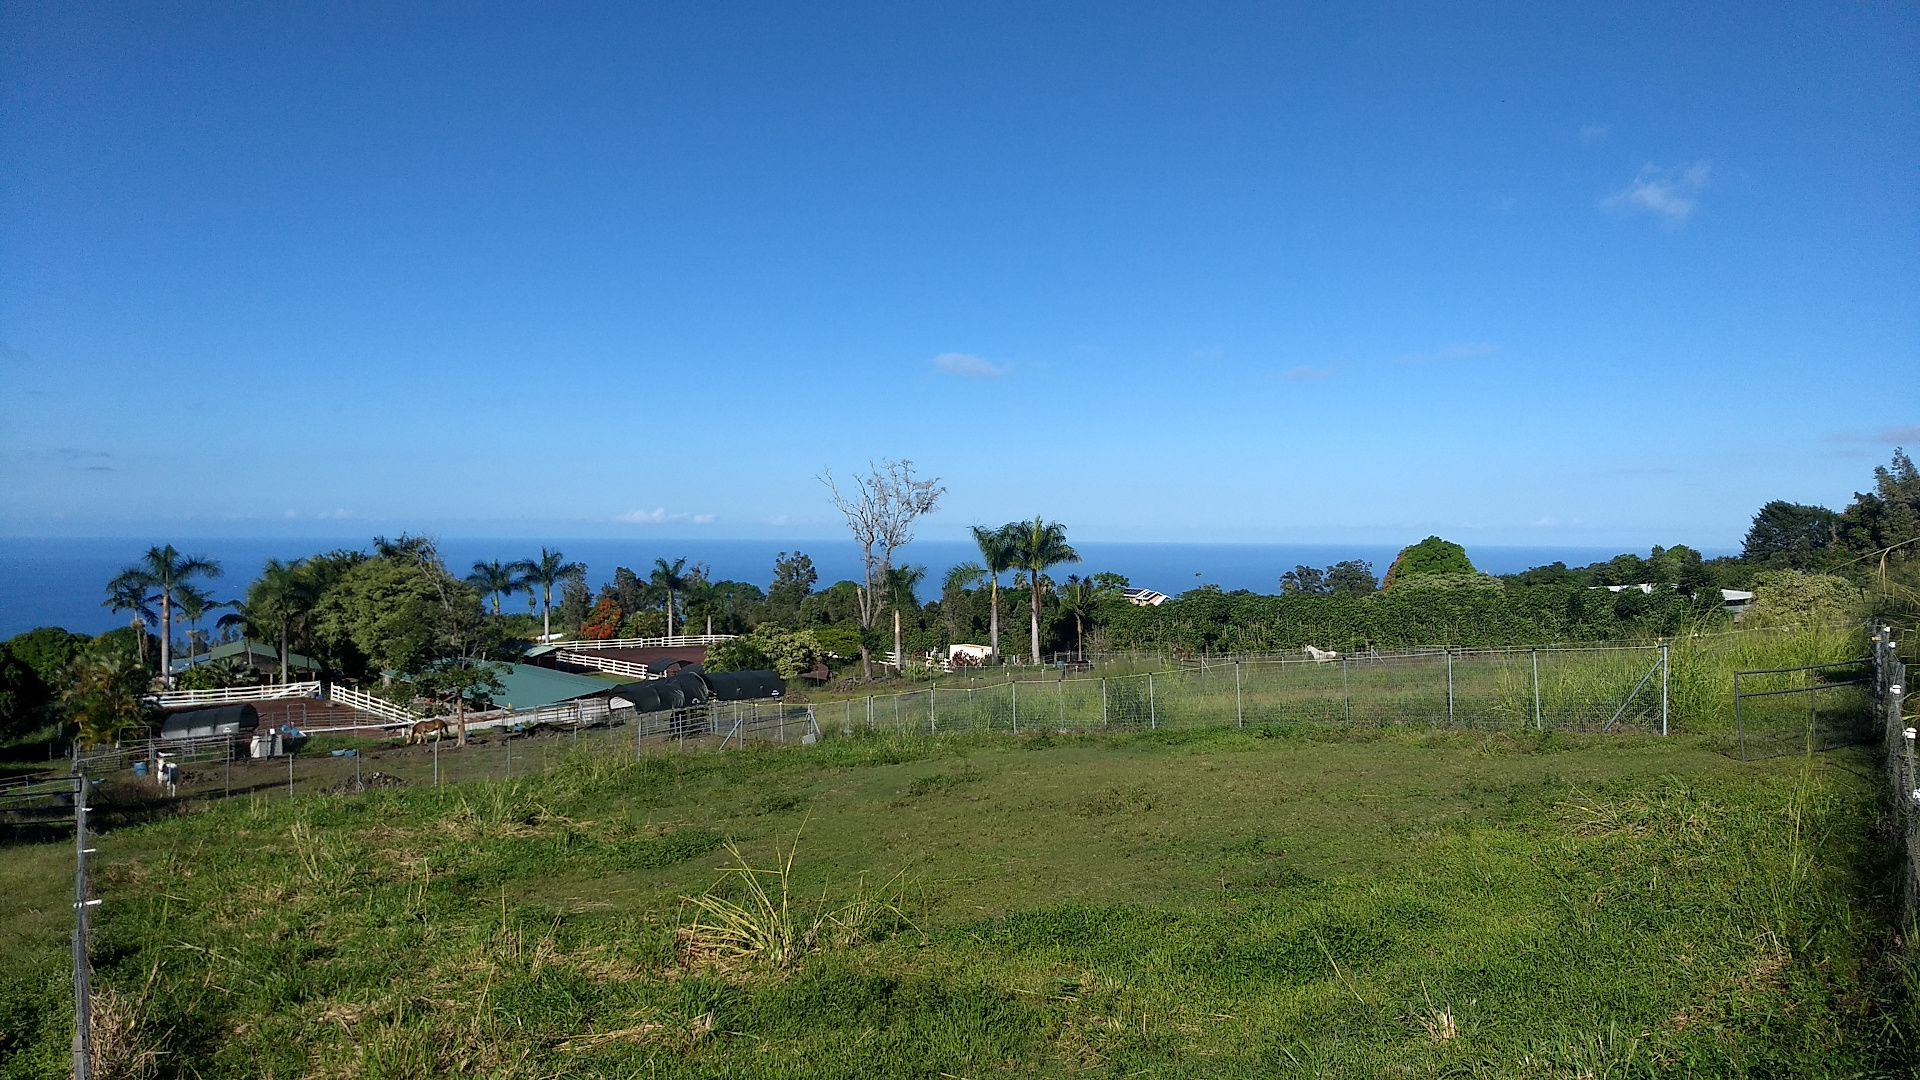 A view down a grassy hill of the barn. Palms and other trees are visible, as is the ocean in the distance.